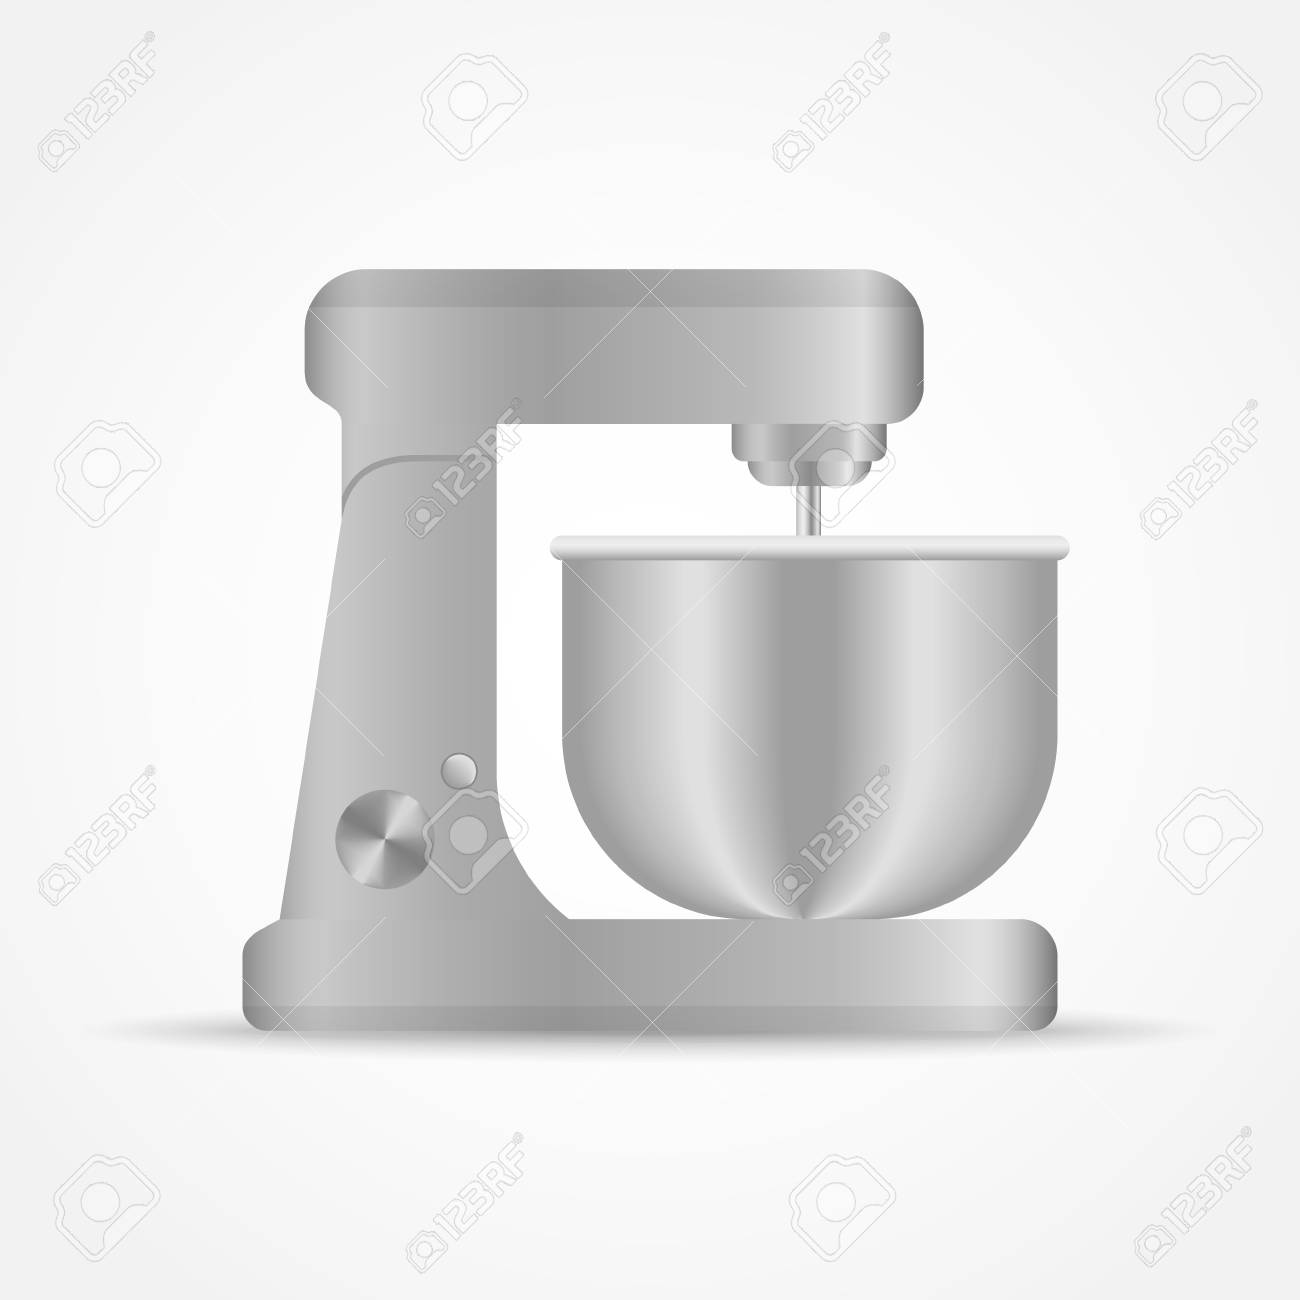 Kitchen stand mixer isolated on white background. Vector illustration.